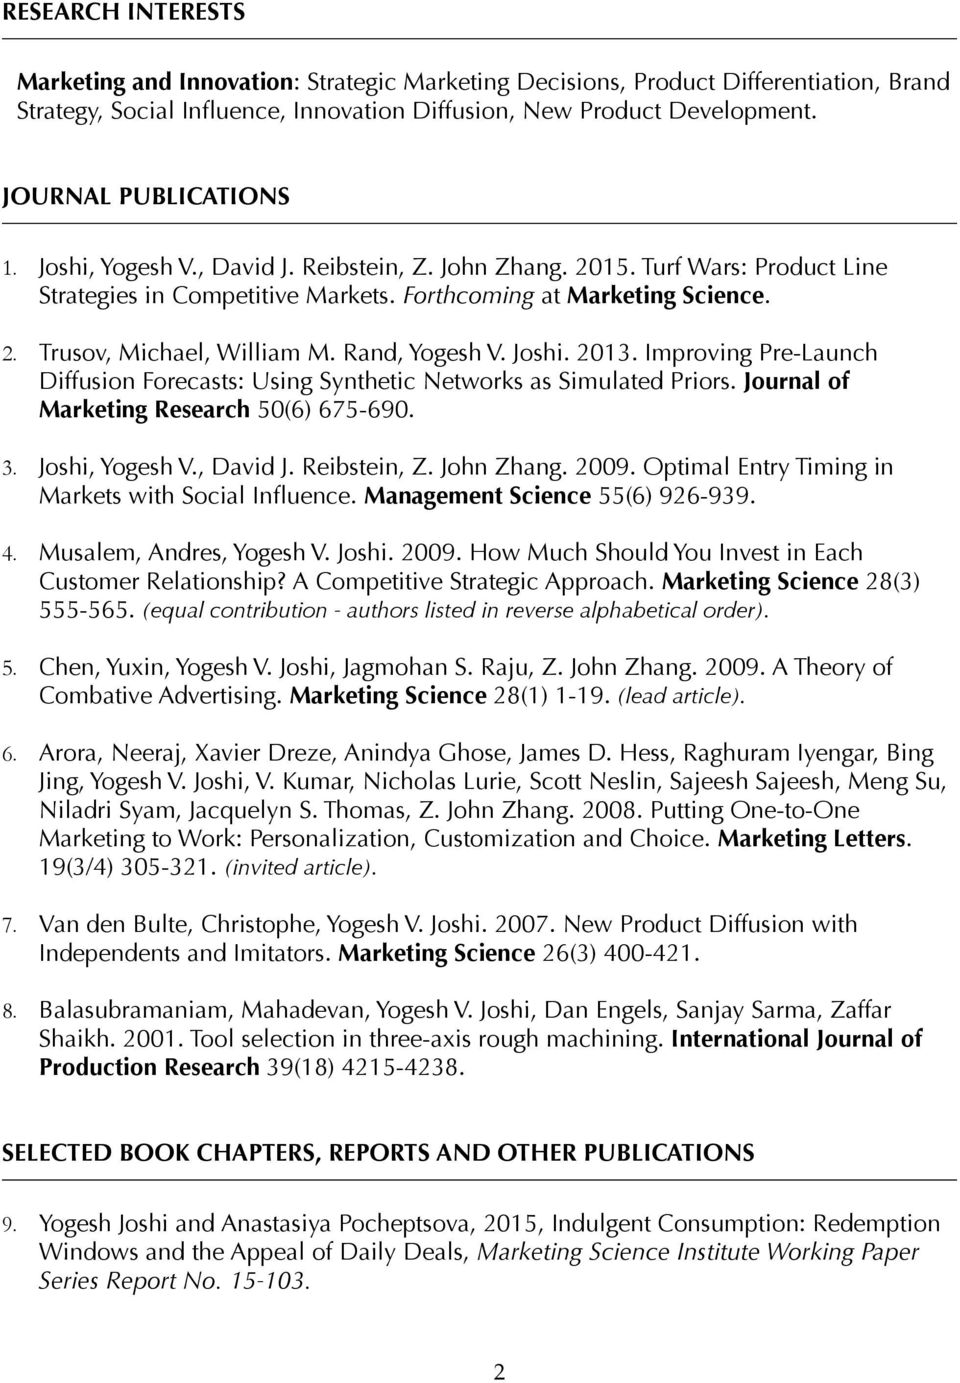 Rand, Yogesh V. Joshi. 2013. Improving Pre-Launch Diffusion Forecasts: Using Synthetic Networks as Simulated Priors. Journal of Marketing Research 50(6) 675-690. 3. Joshi, Yogesh V., David J.